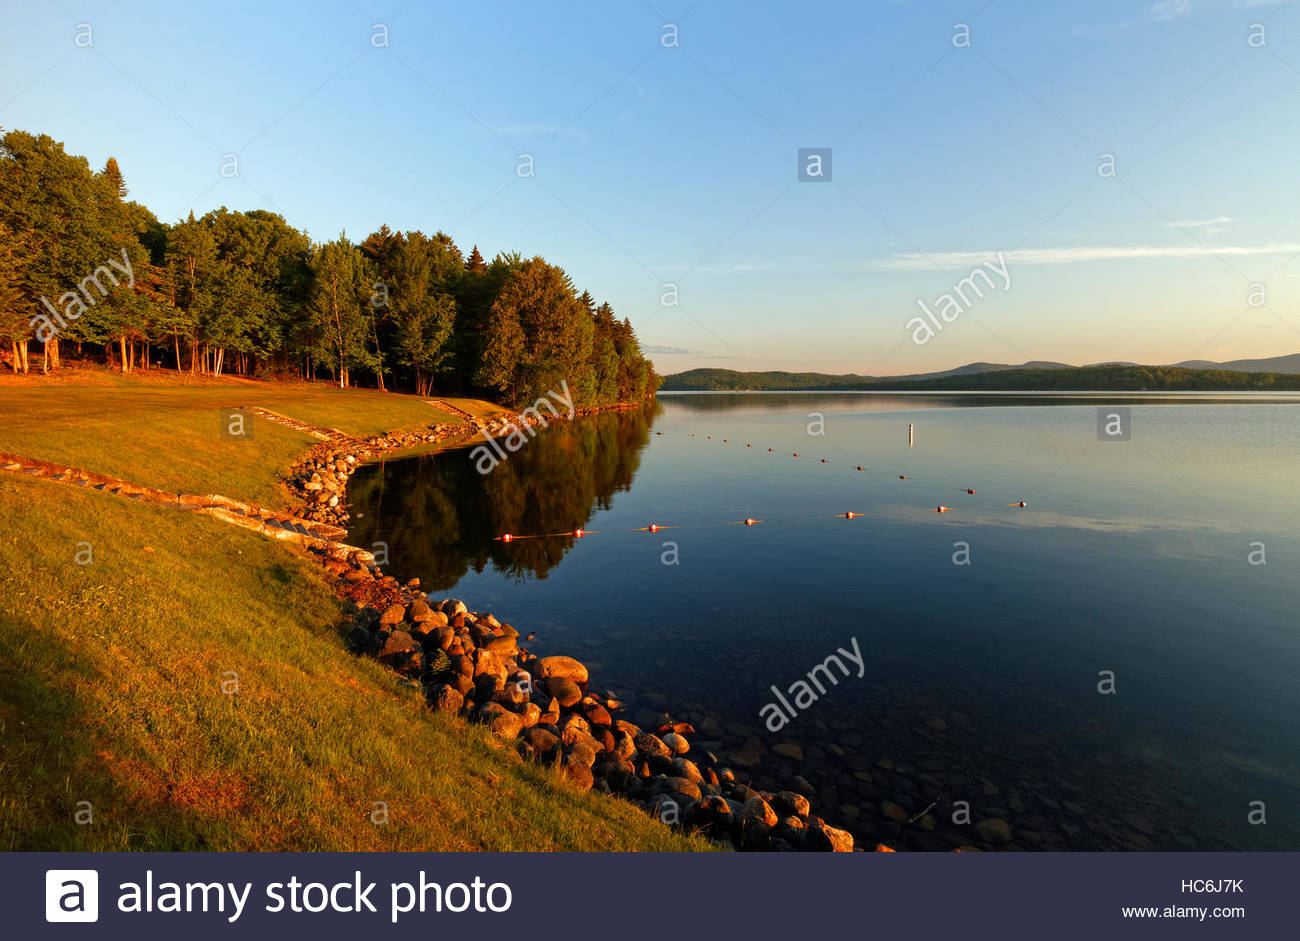 View of the swimming area at Rangeley Lakes State Park, Maine, USA. - Stock Image